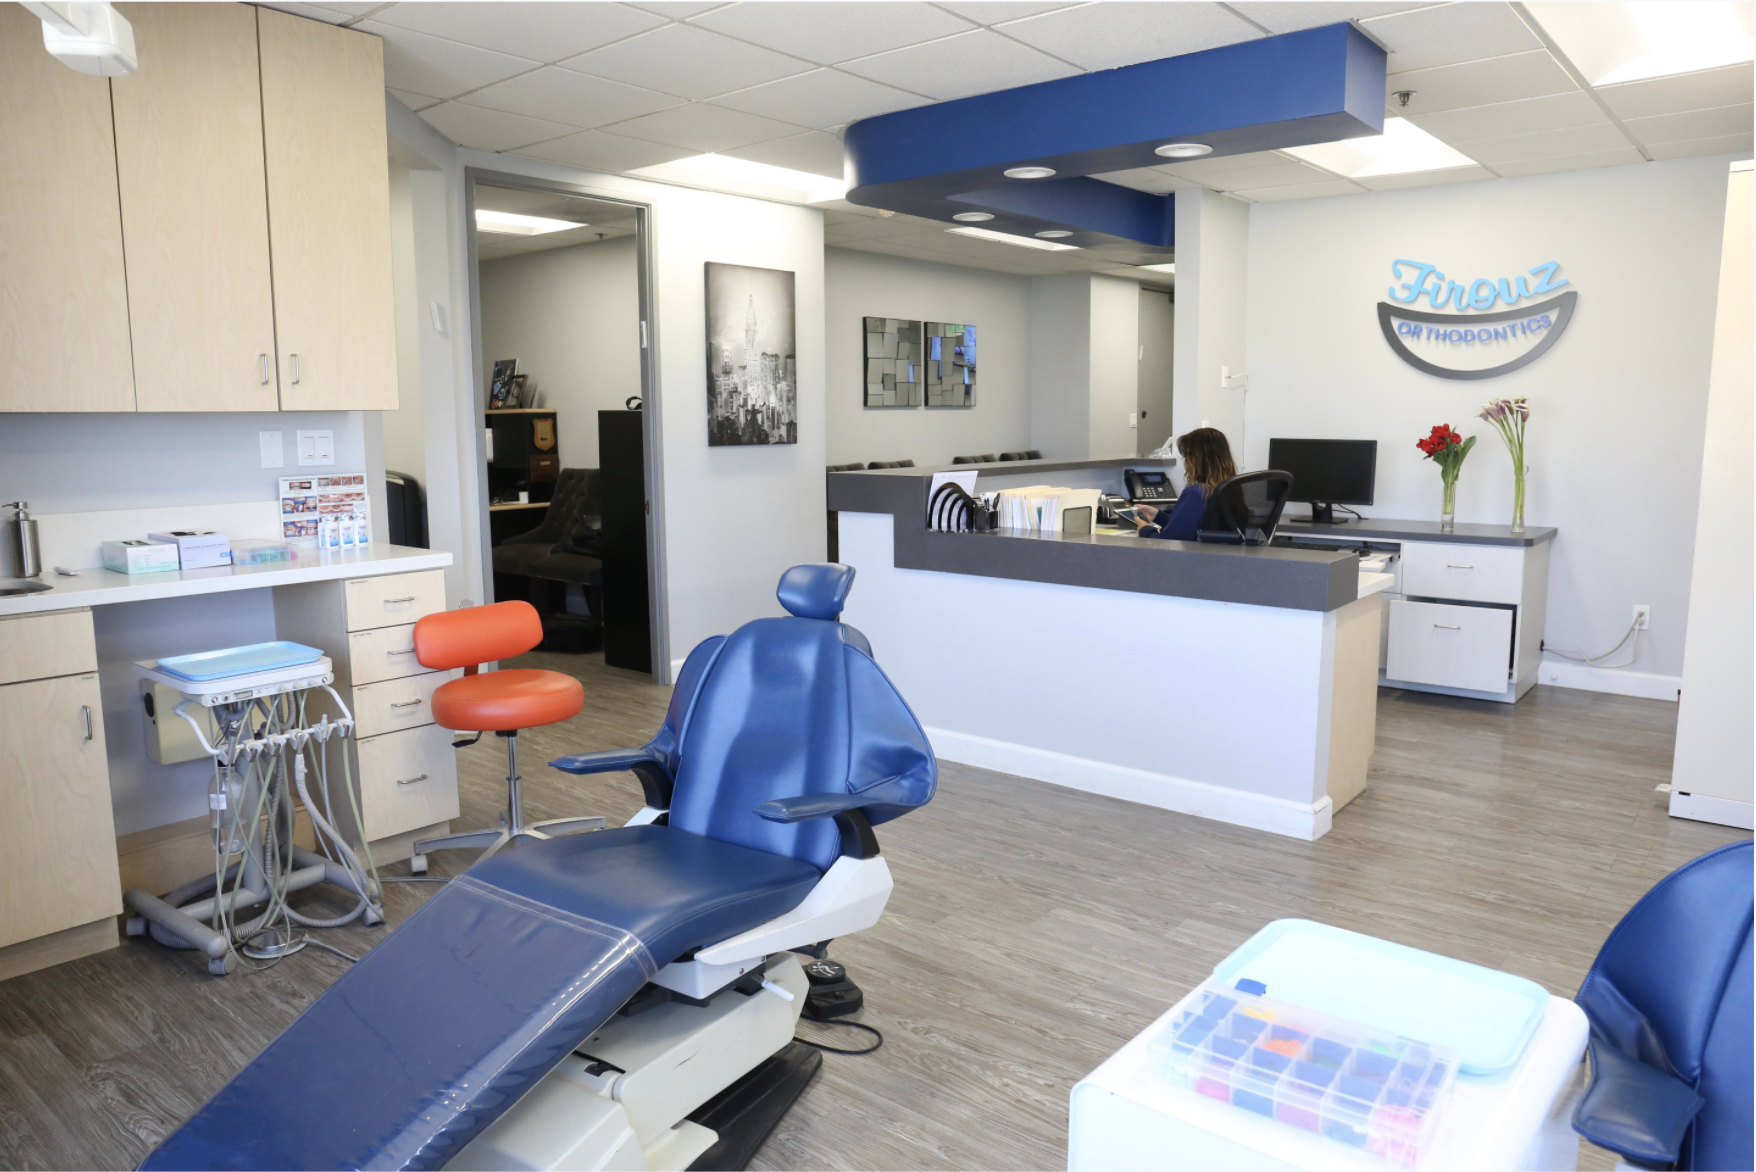 Orthodontics cleaning and consult area.